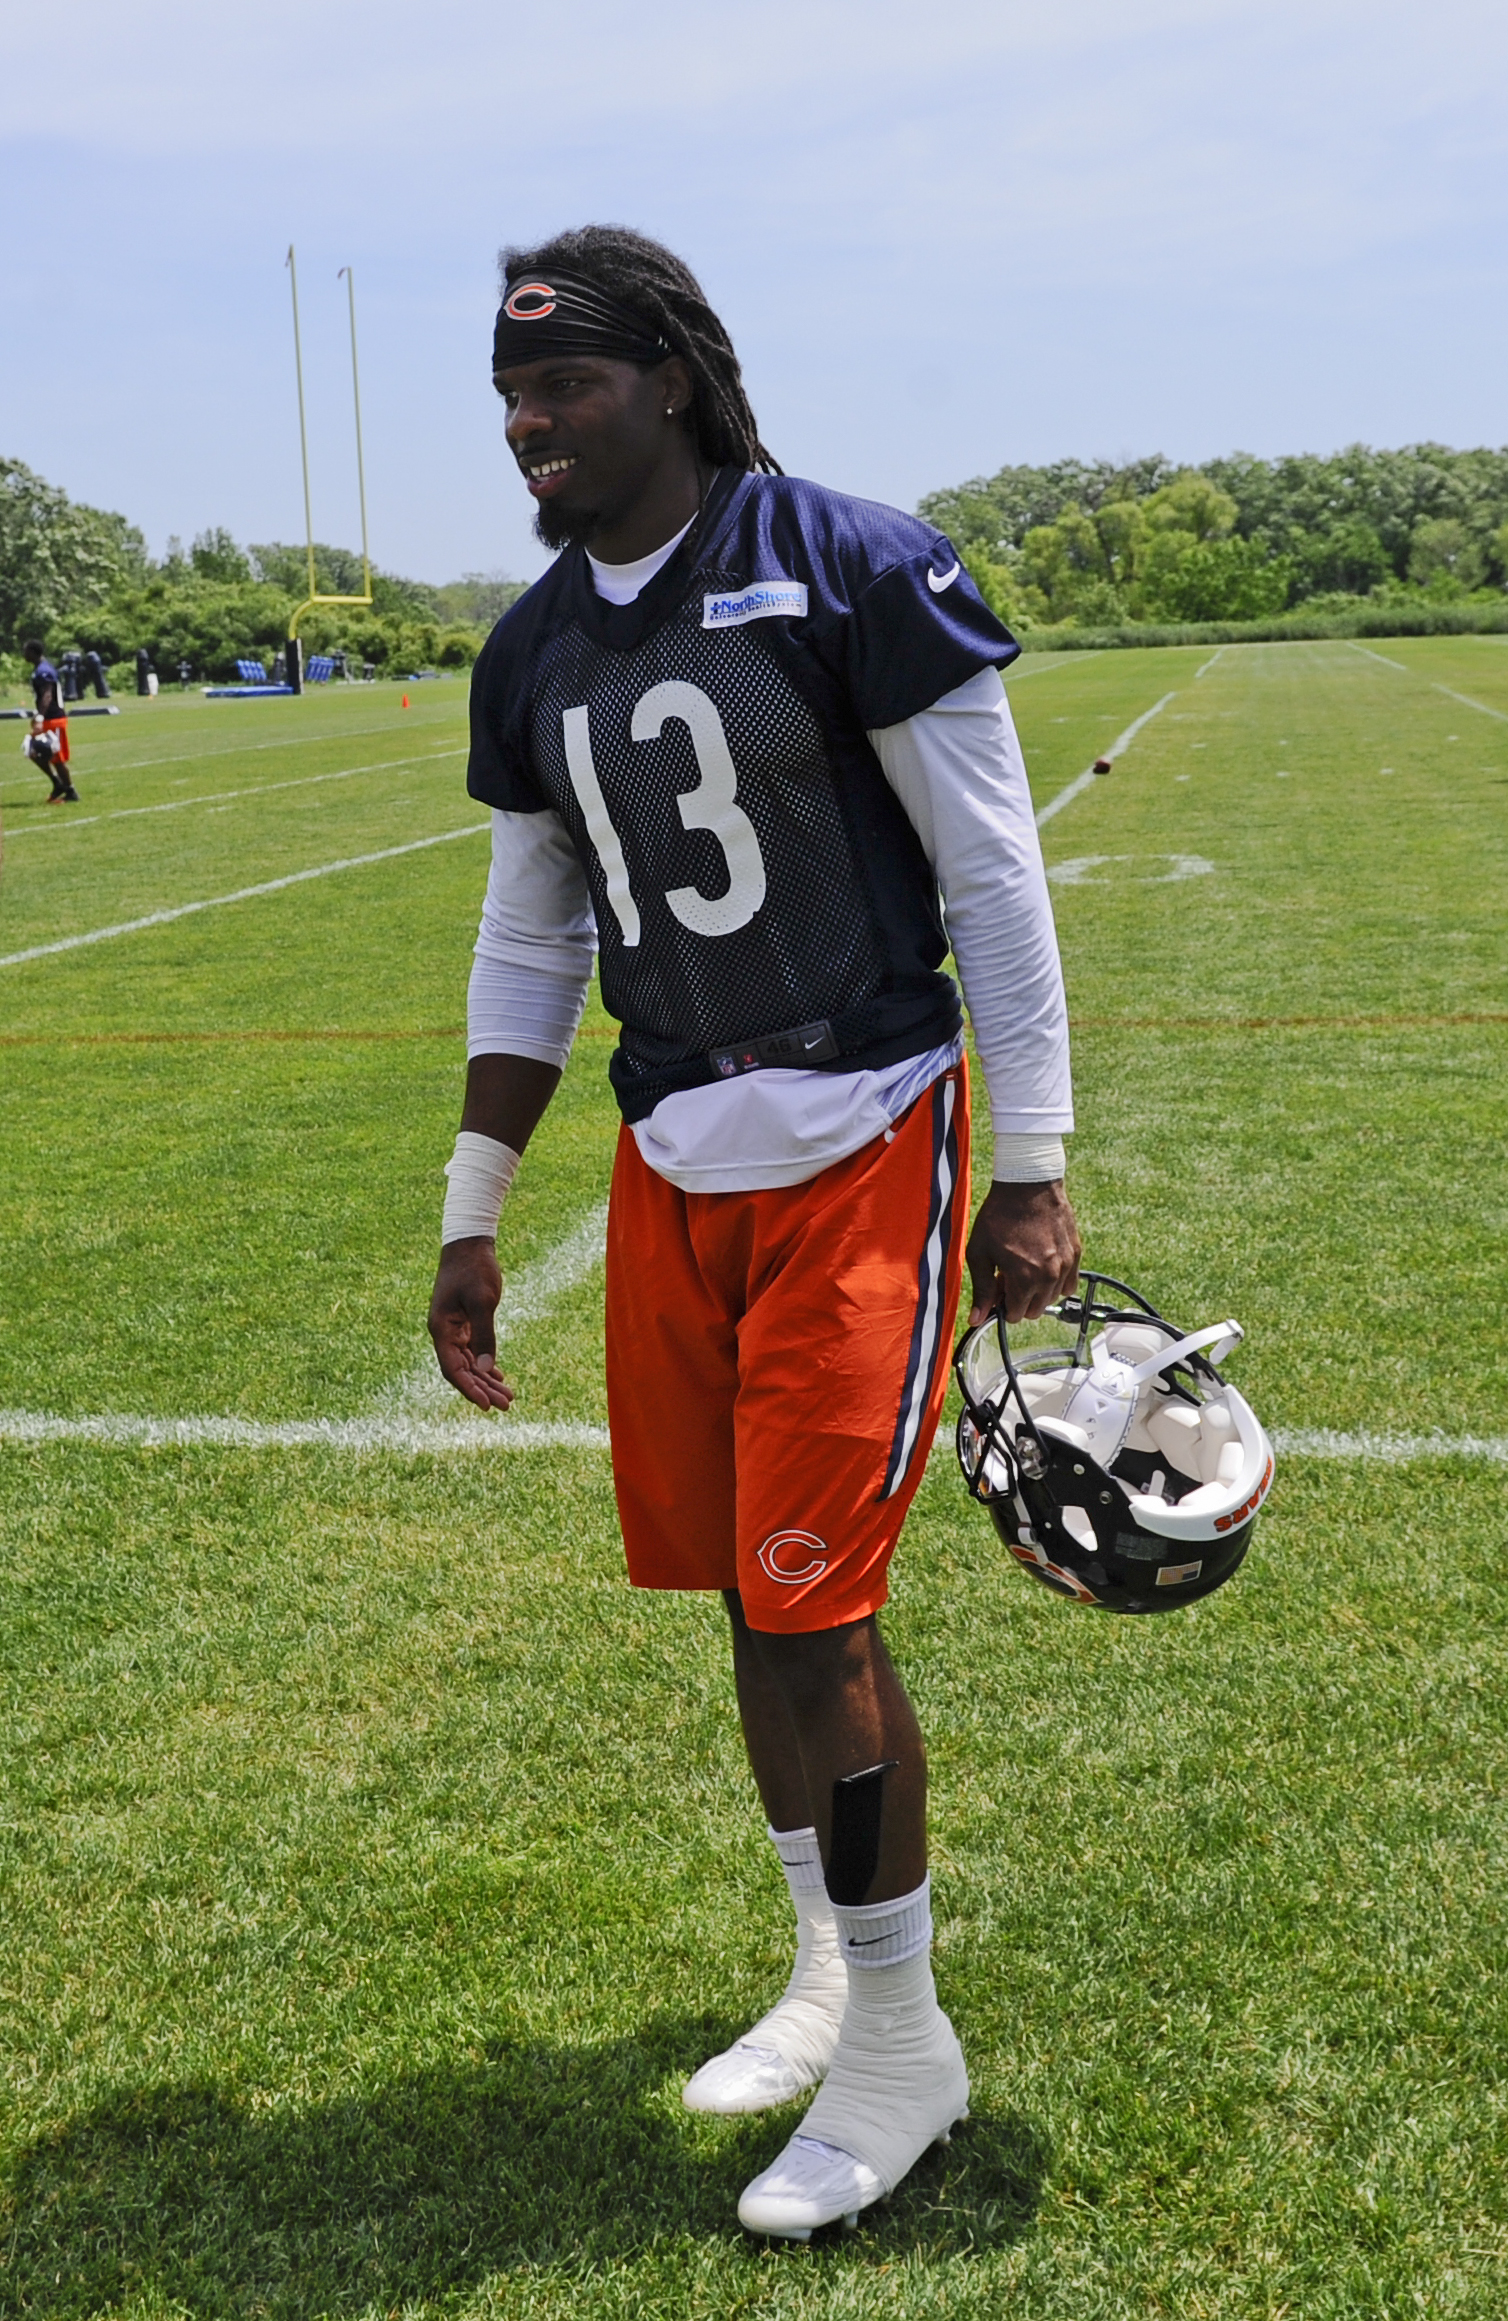 Chicago Bears wide receiver Kevin White after an NFL football organized team activity at Halas Hall, Wednesday, June 10, 2015, in Lake Forest, Ill. (AP Photo/Matt Marton)